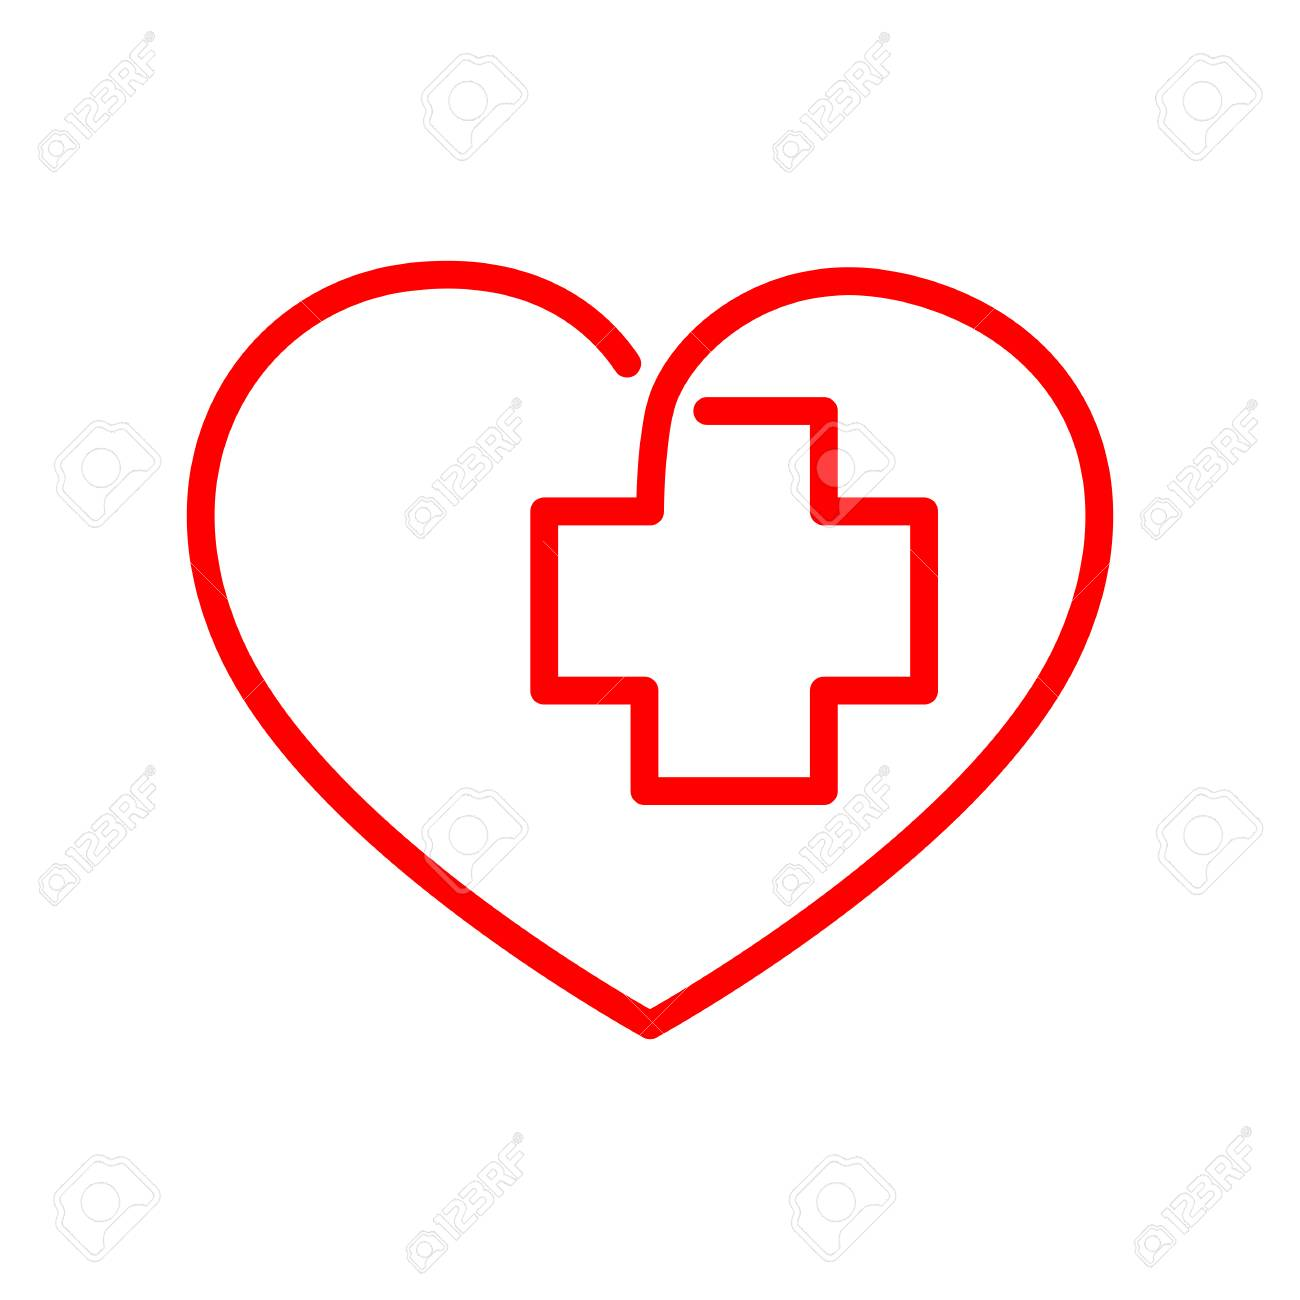 Medical Cross Inside In The Heart Symbol Red Medical Sign Isolated